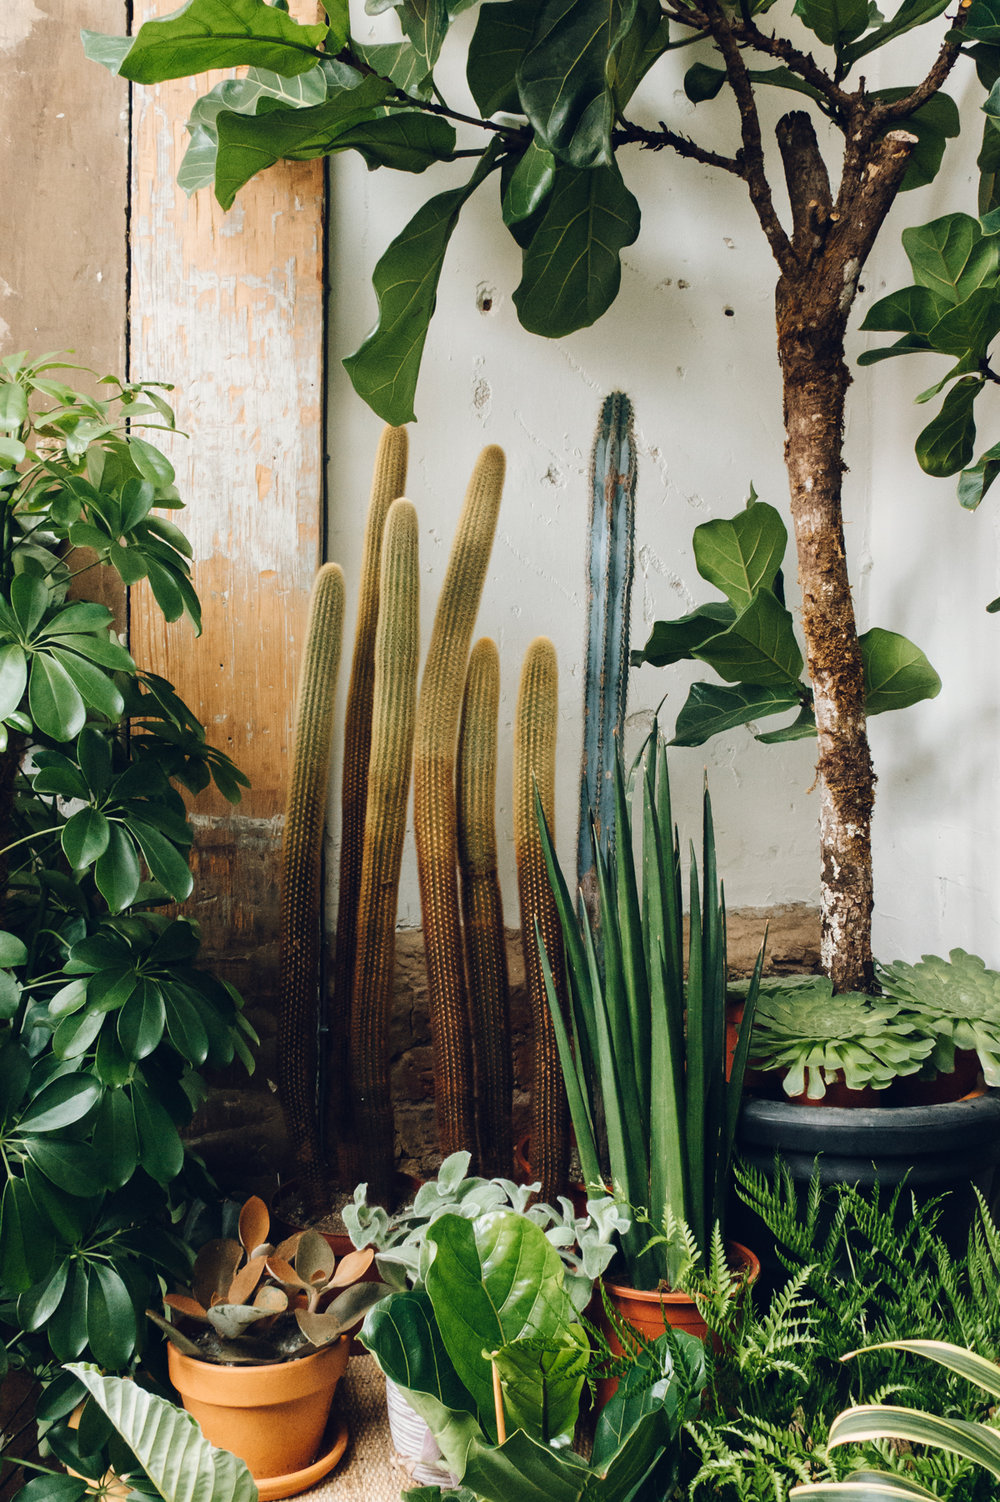 Cacti and plants in an indoor garden DREAM